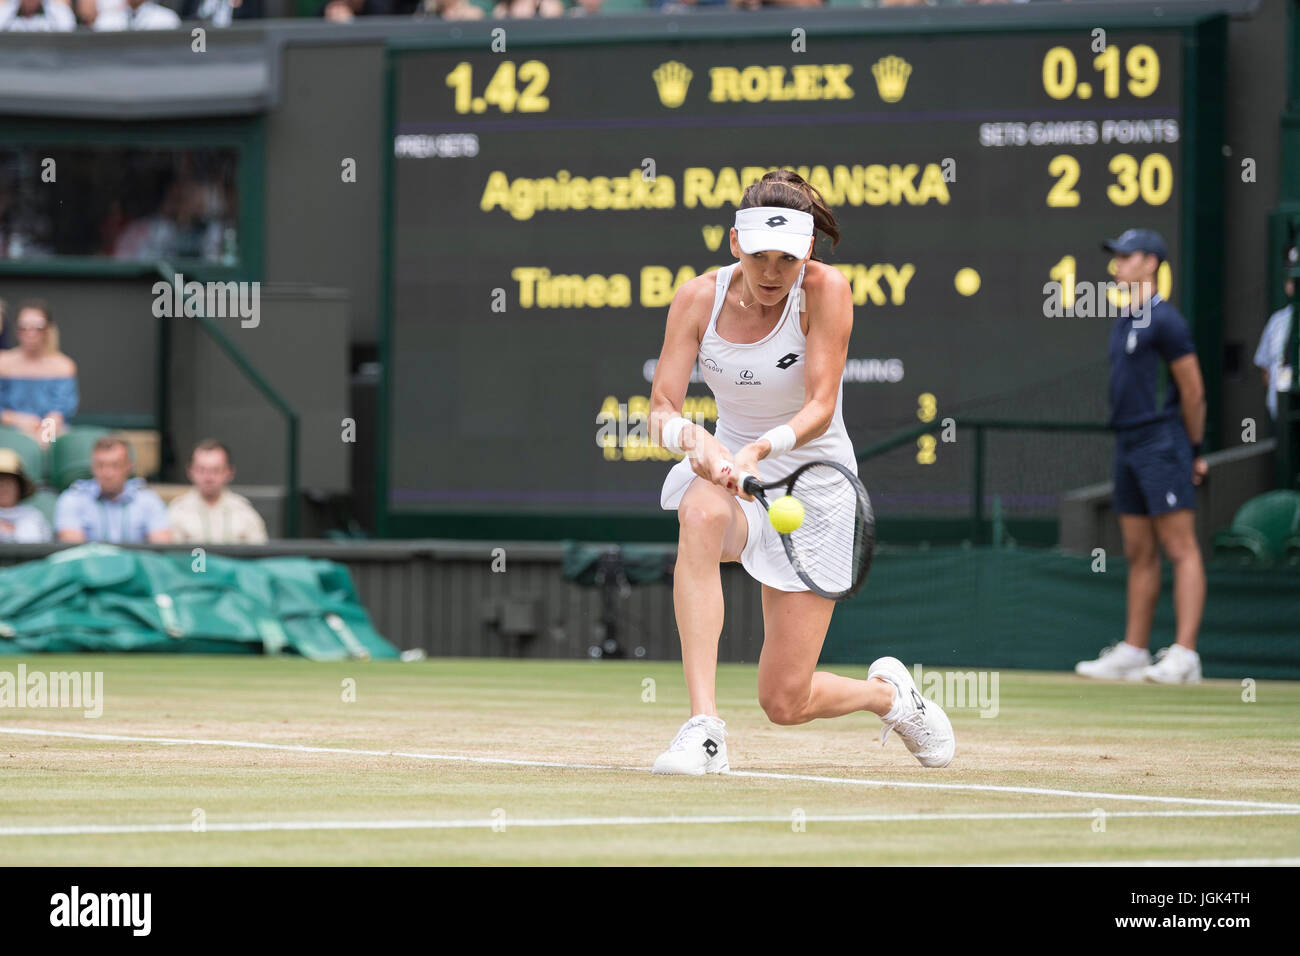 London, UK. 8th July, 2017. The Wimbledon Tennis Championships 2017 held at The All, UK. 08th July, 2017. Lawn Tennis Stock Photo